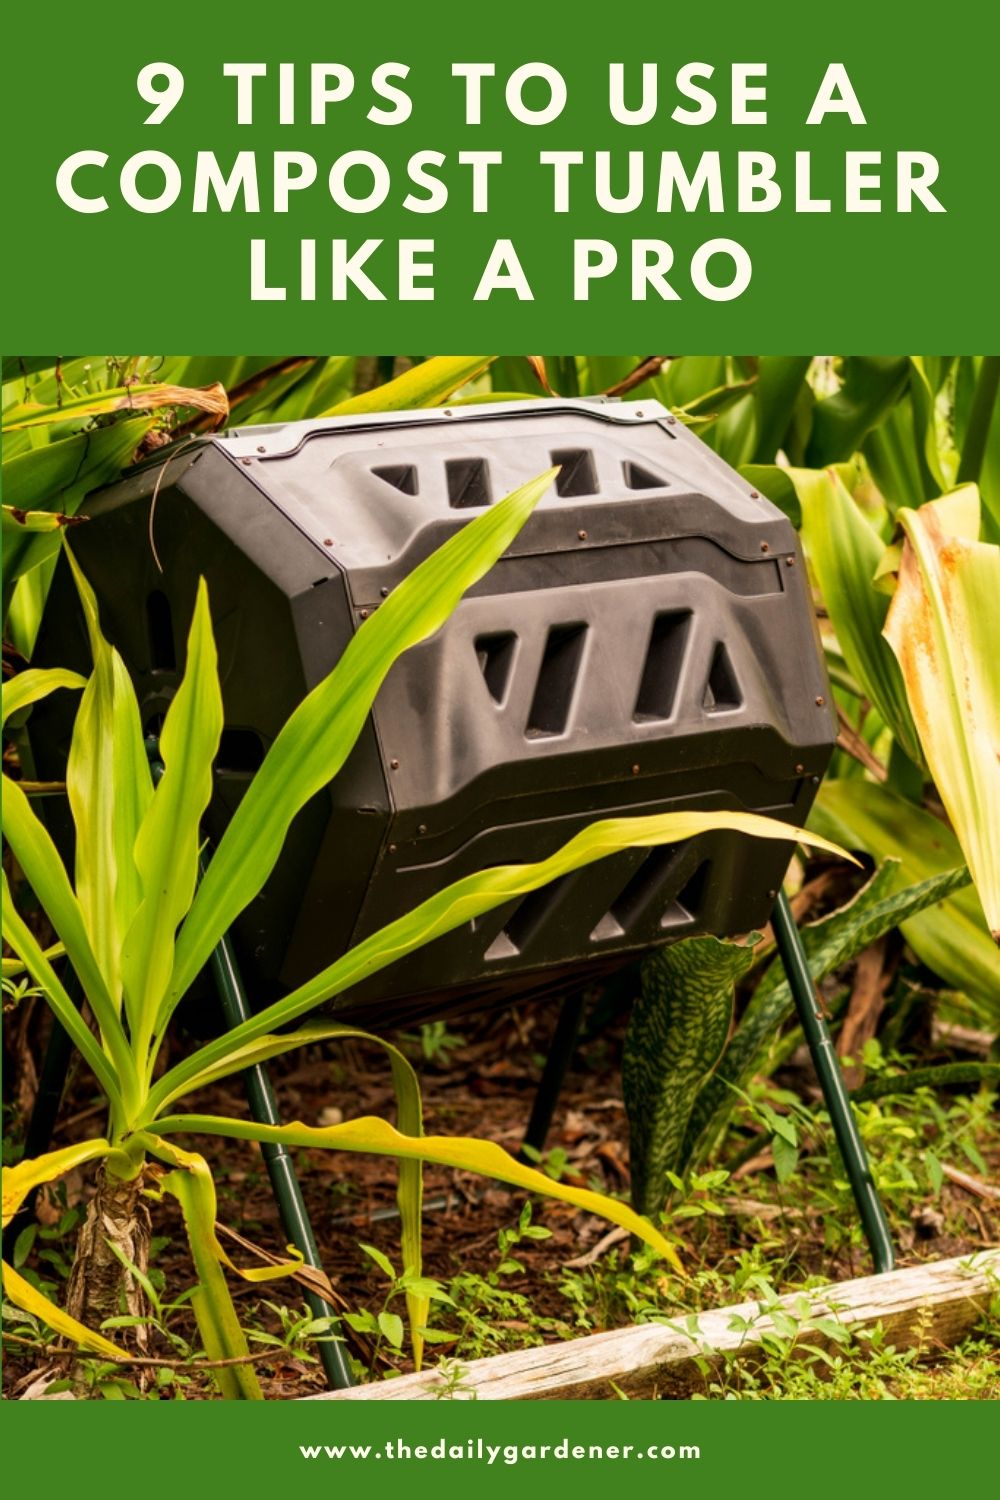 9 Tips to Use a Compost Tumbler Like a Pro 1